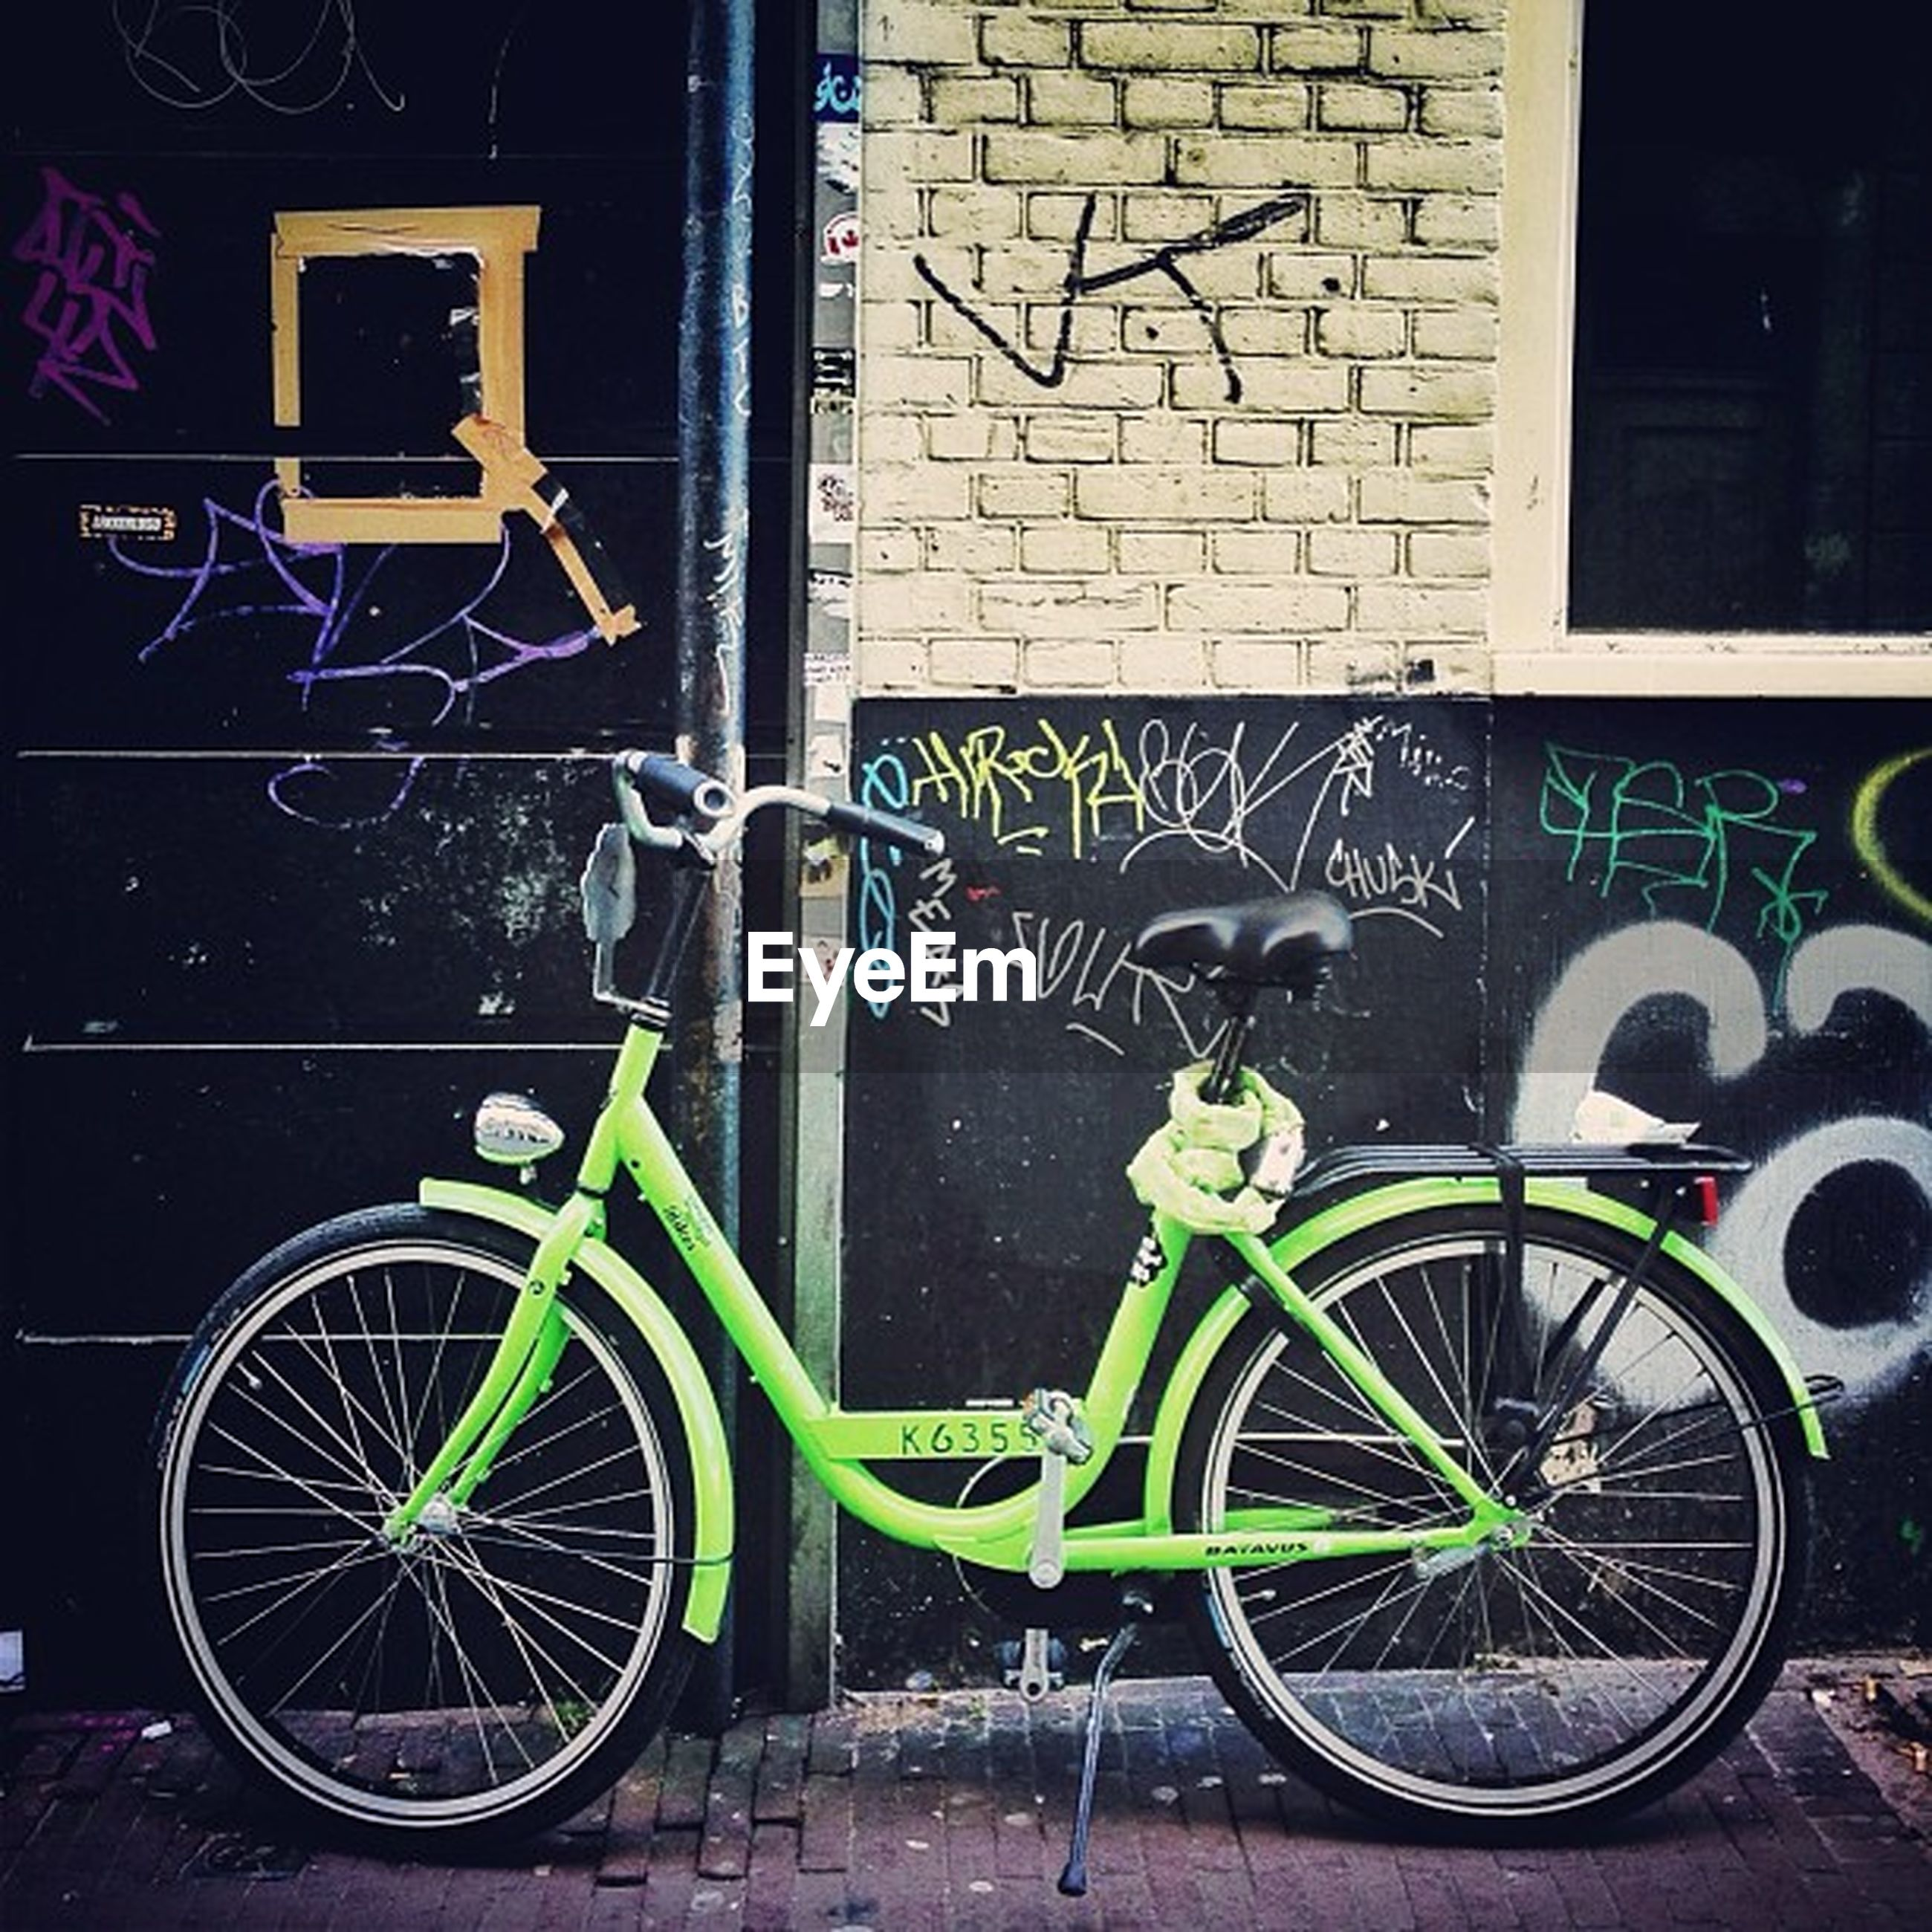 bicycle, transportation, mode of transport, land vehicle, stationary, parking, parked, building exterior, wall - building feature, architecture, built structure, leaning, wheel, street, wall, cycle, outdoors, graffiti, day, no people